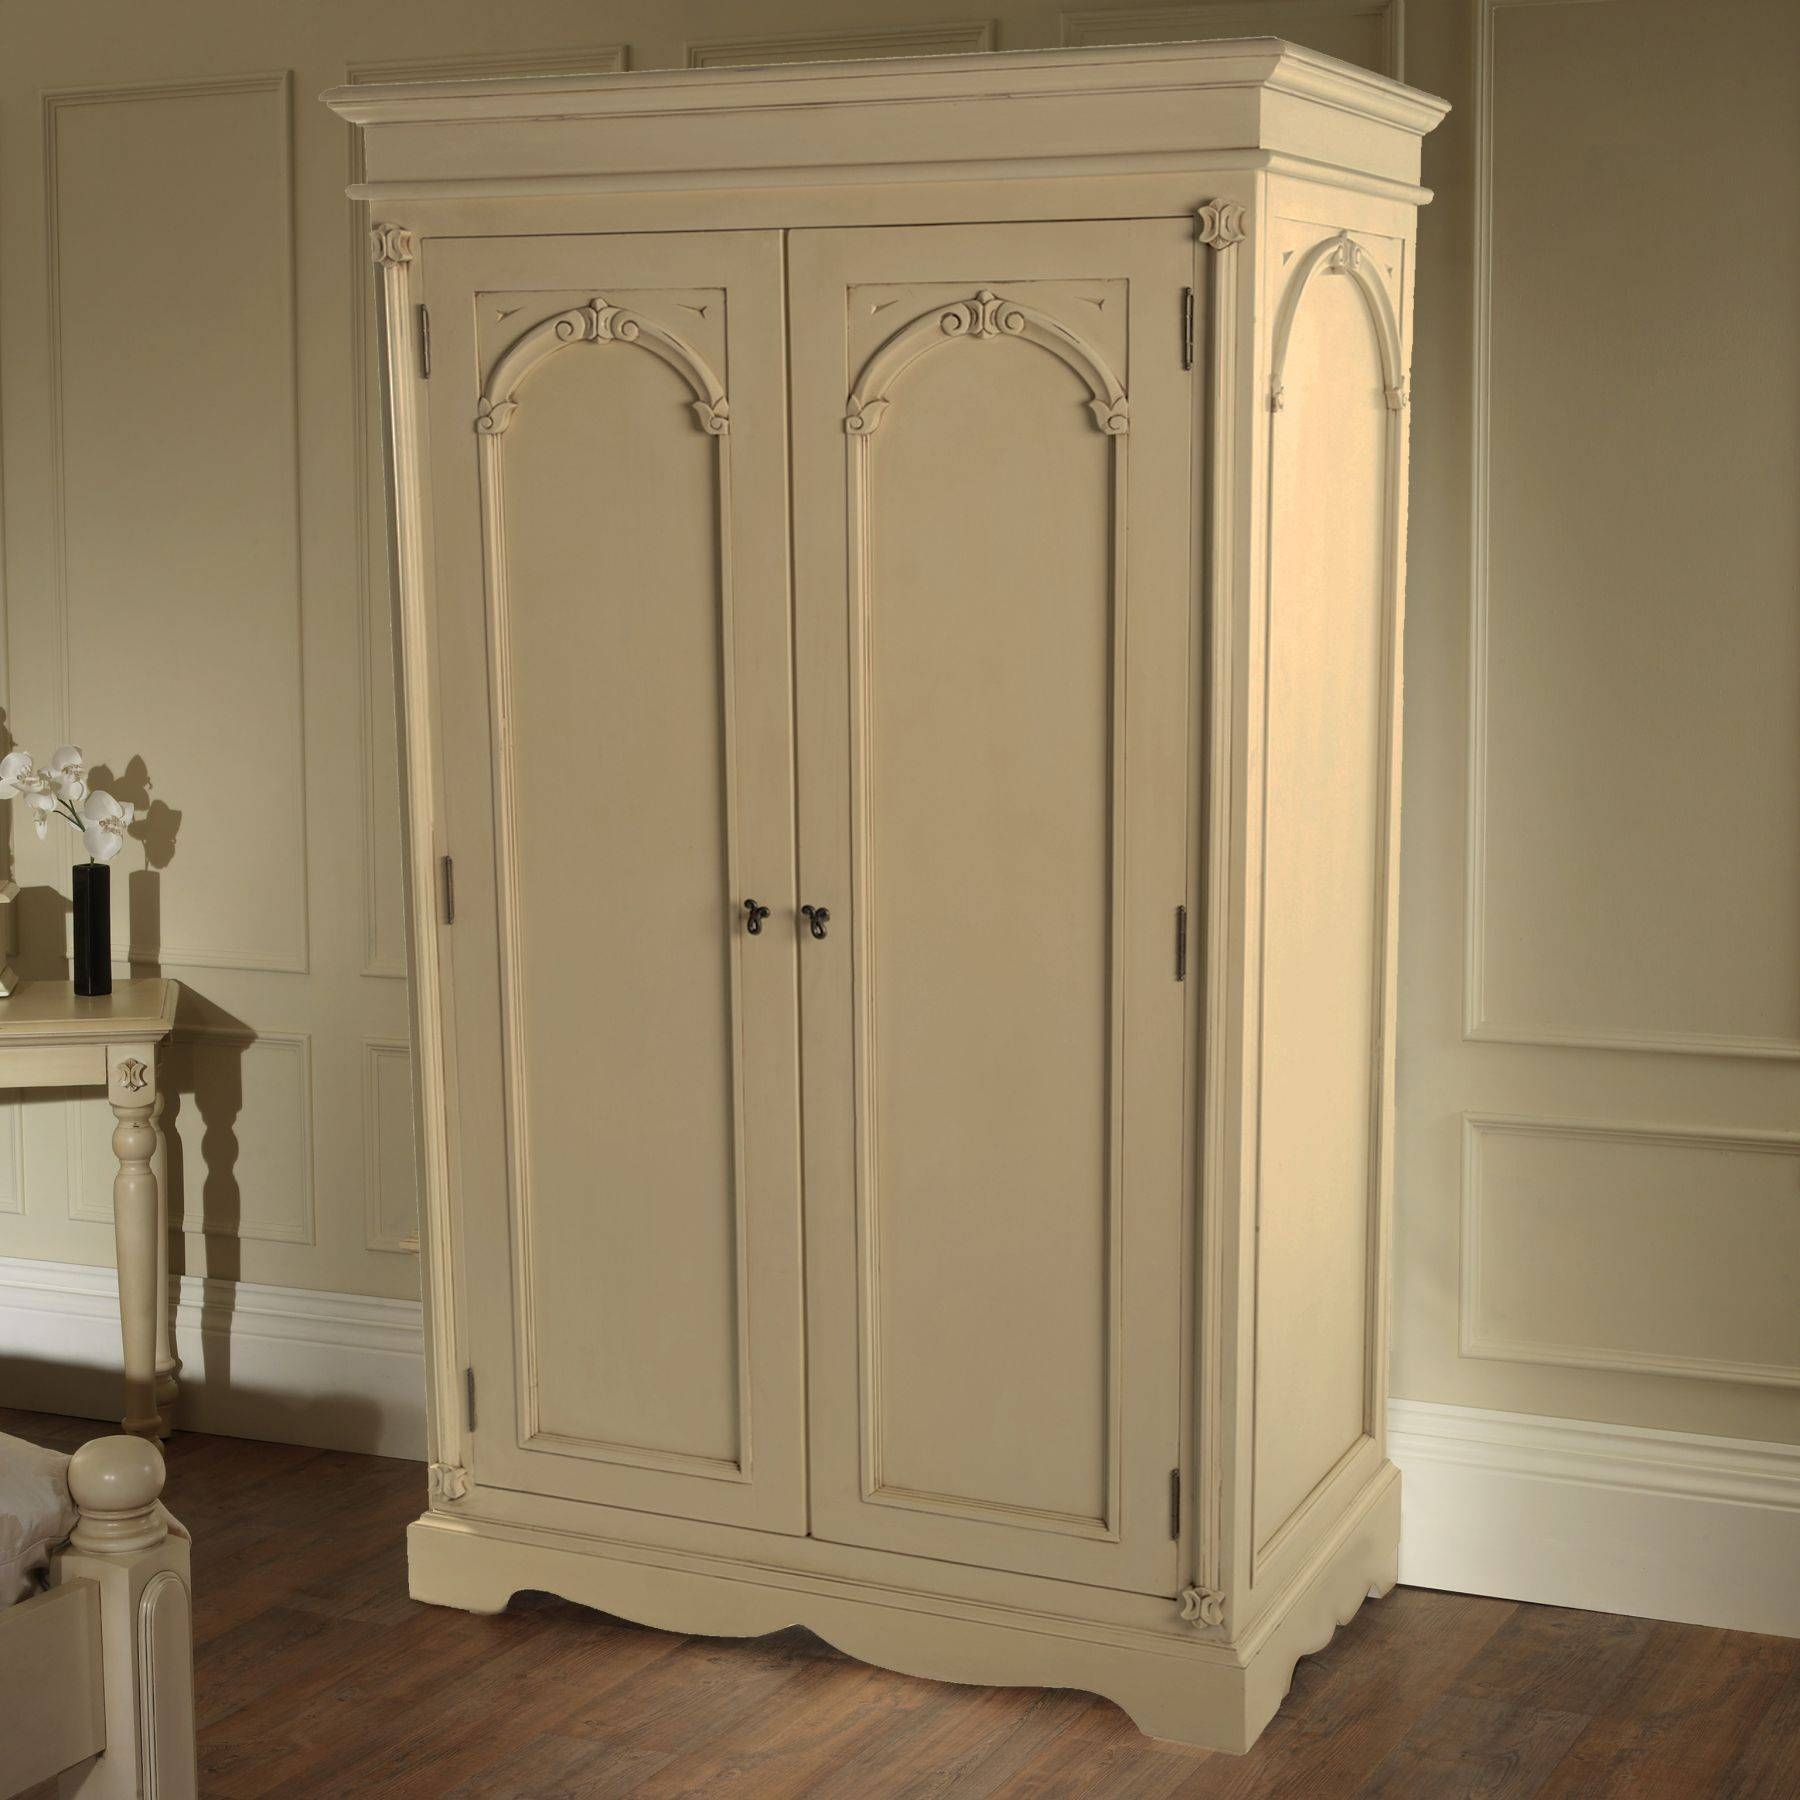 Victorian Antique French Wardrobe Working Well Alongside Our within French Shabby Chic Wardrobes (Image 15 of 15)